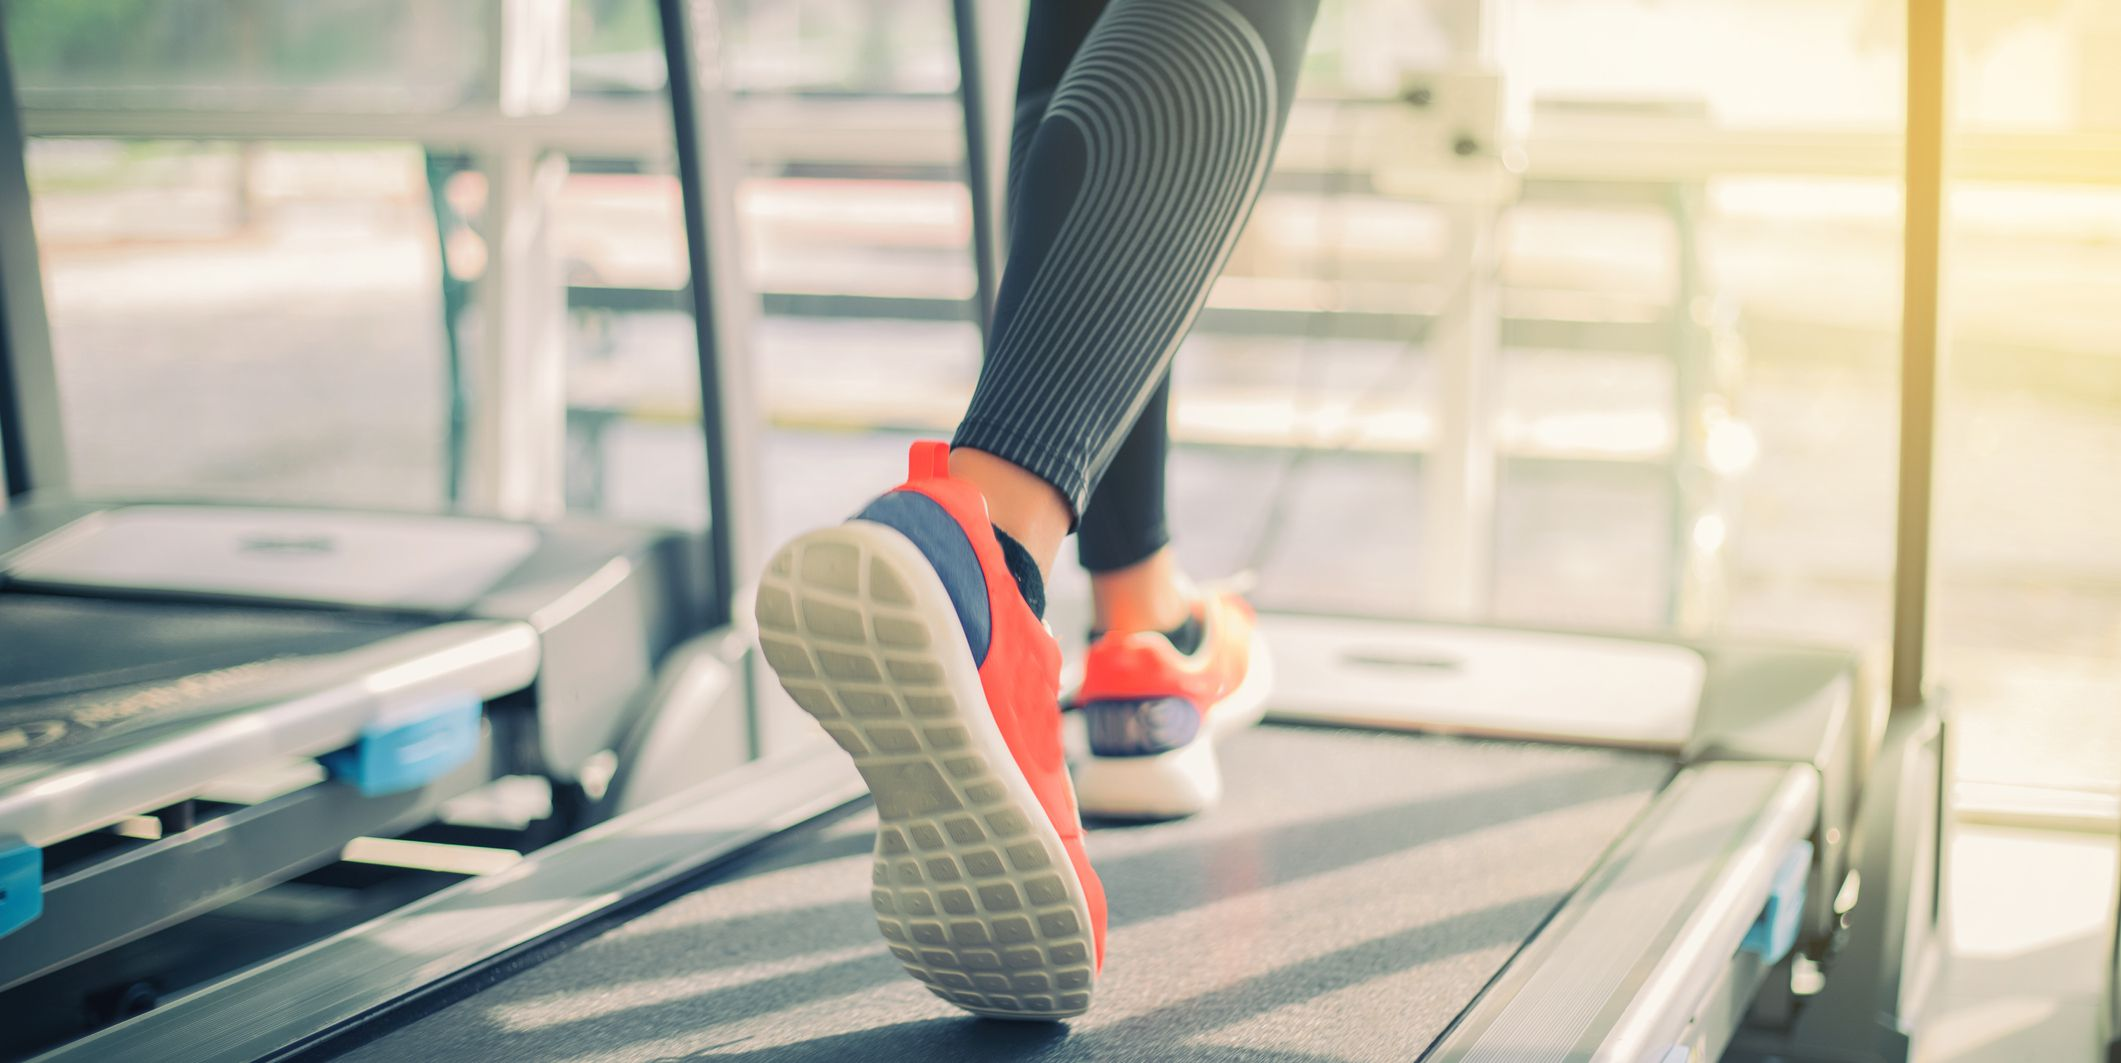 Here's The MAJOR Difference Between The Elliptical And The Treadmill